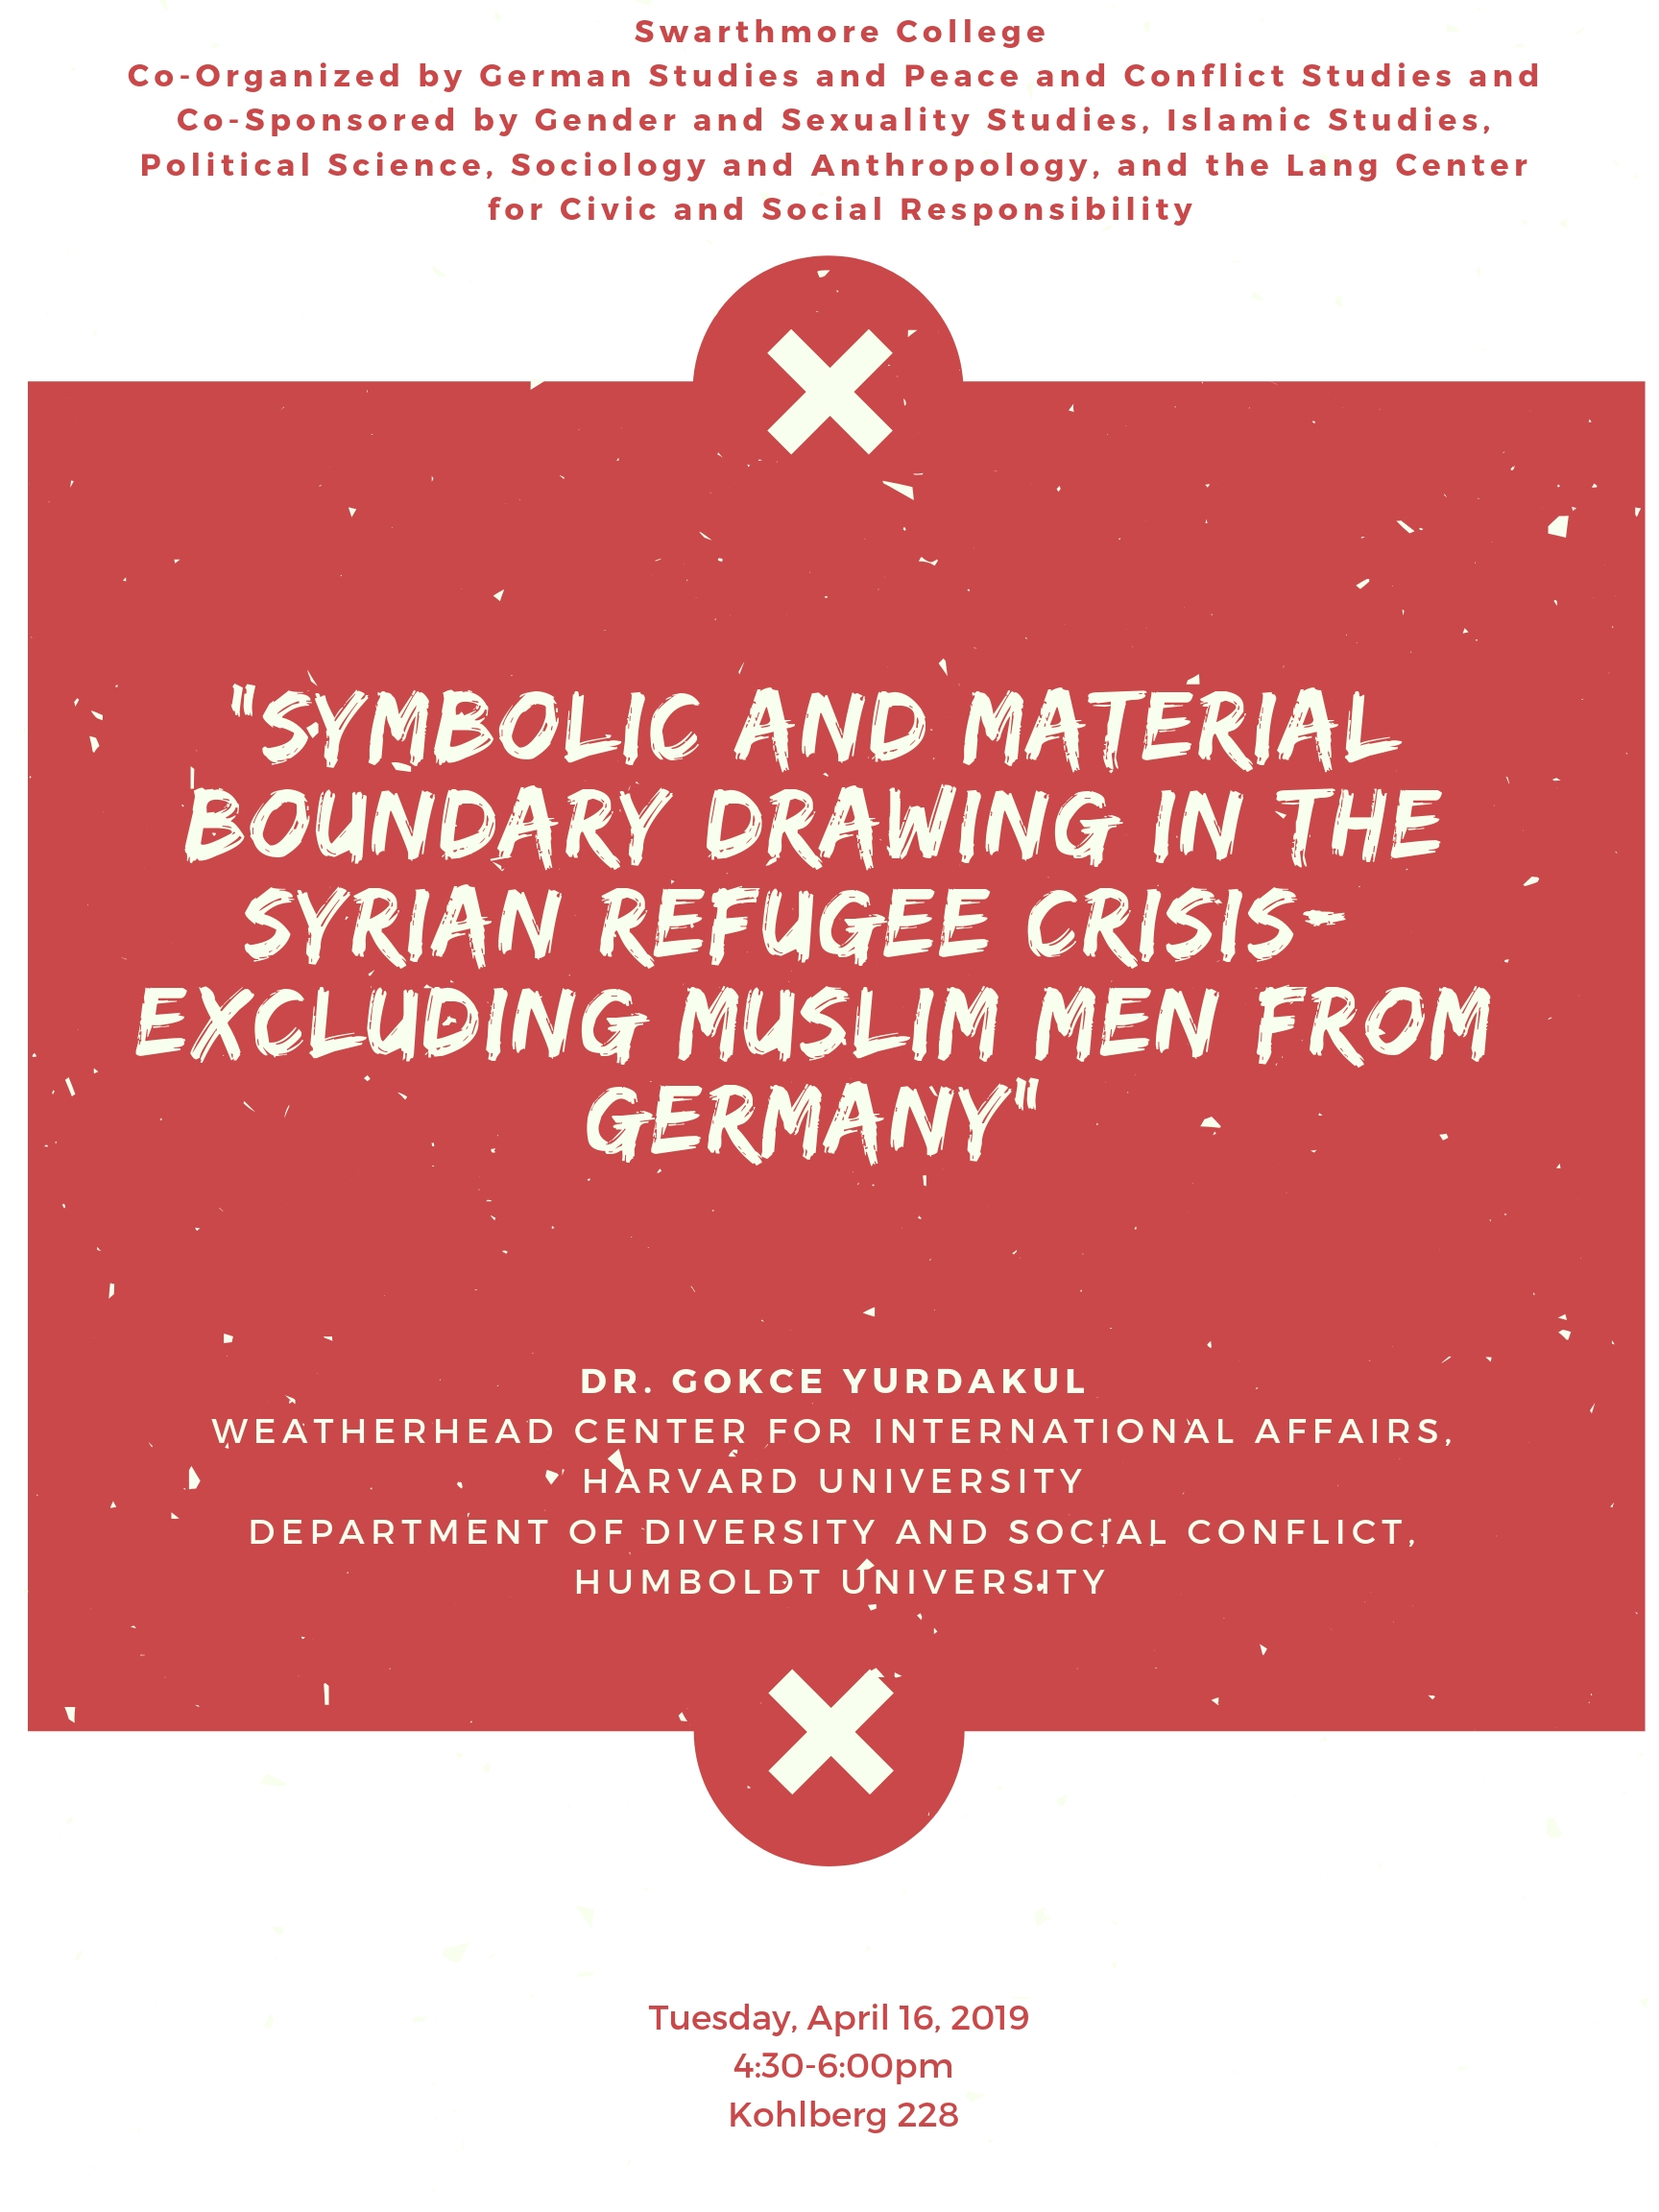 Copy of _Symbolic and Material Boundary Drawing in the Syrian Refugee Crisis_ excluding Muslim Men from Germany._